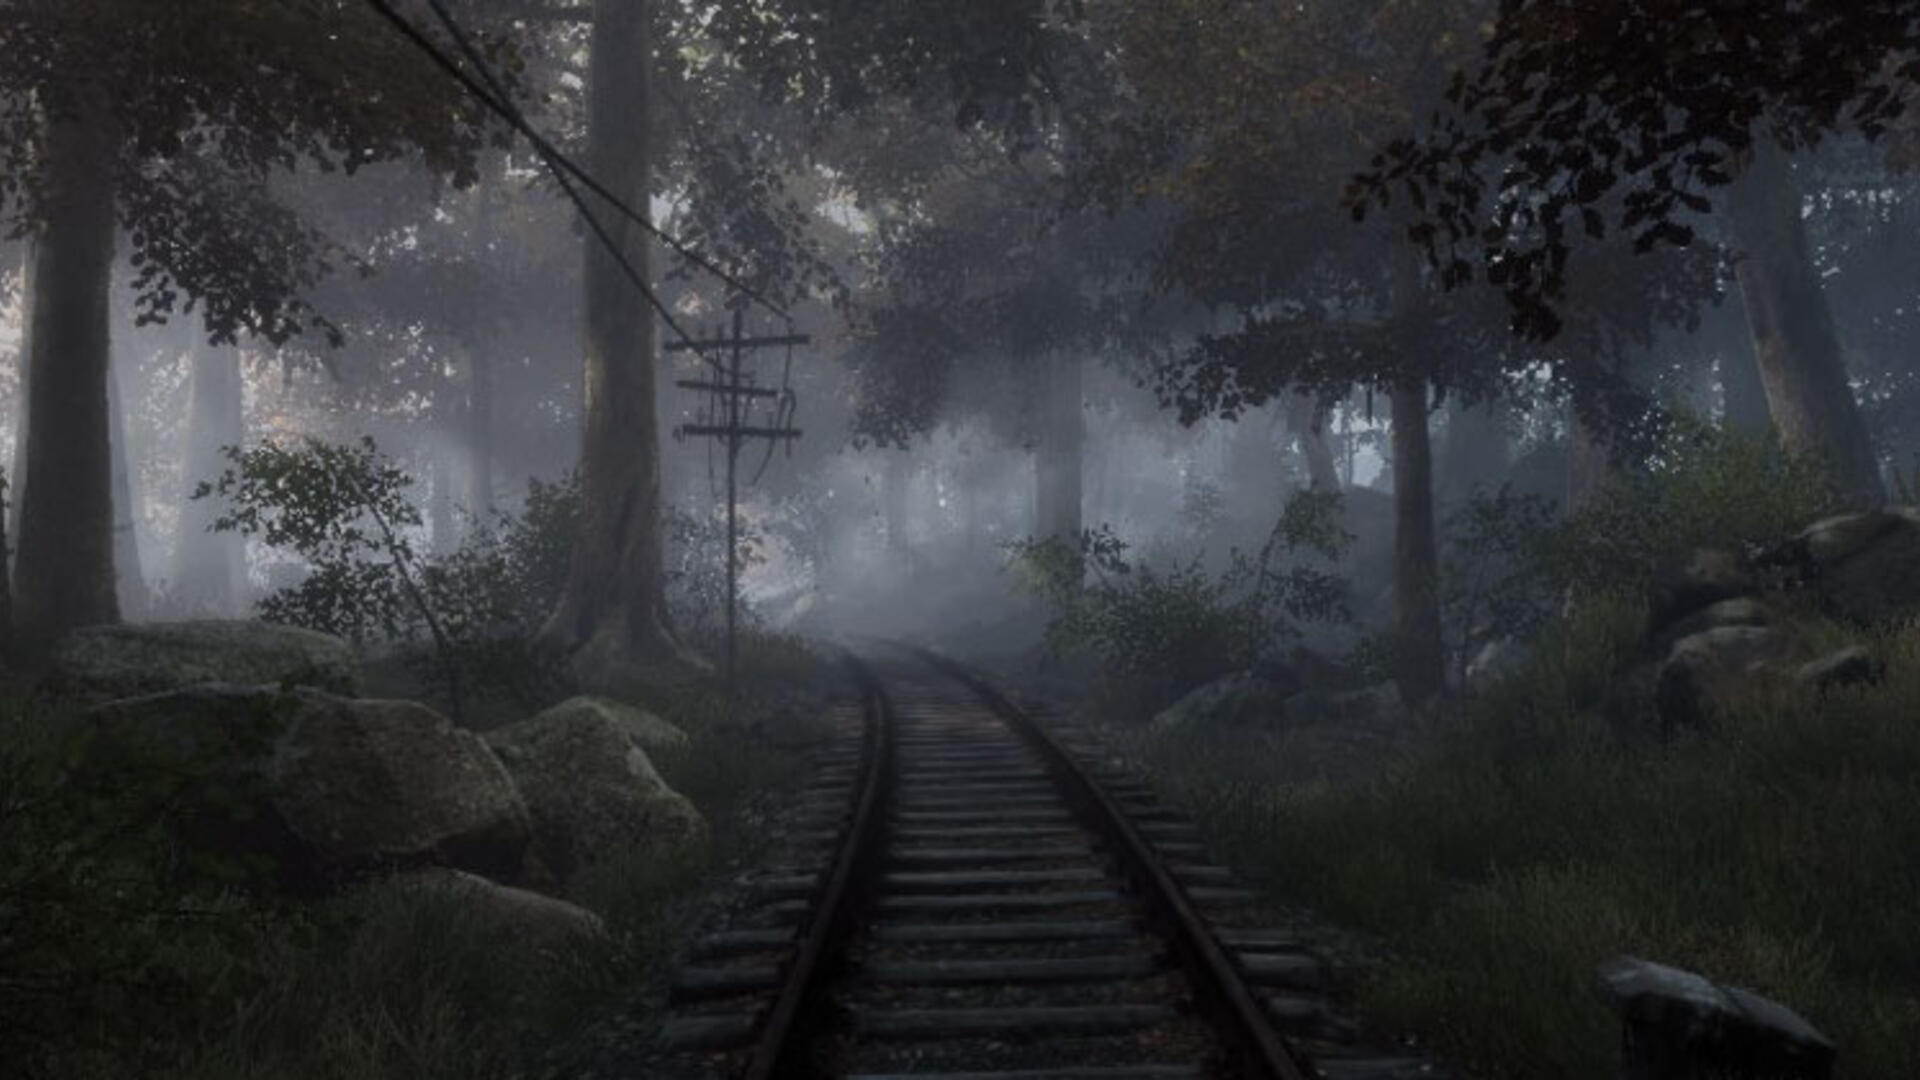 The Vanishing of Ethan Carter PC Review: One Hell of a Myst-ery